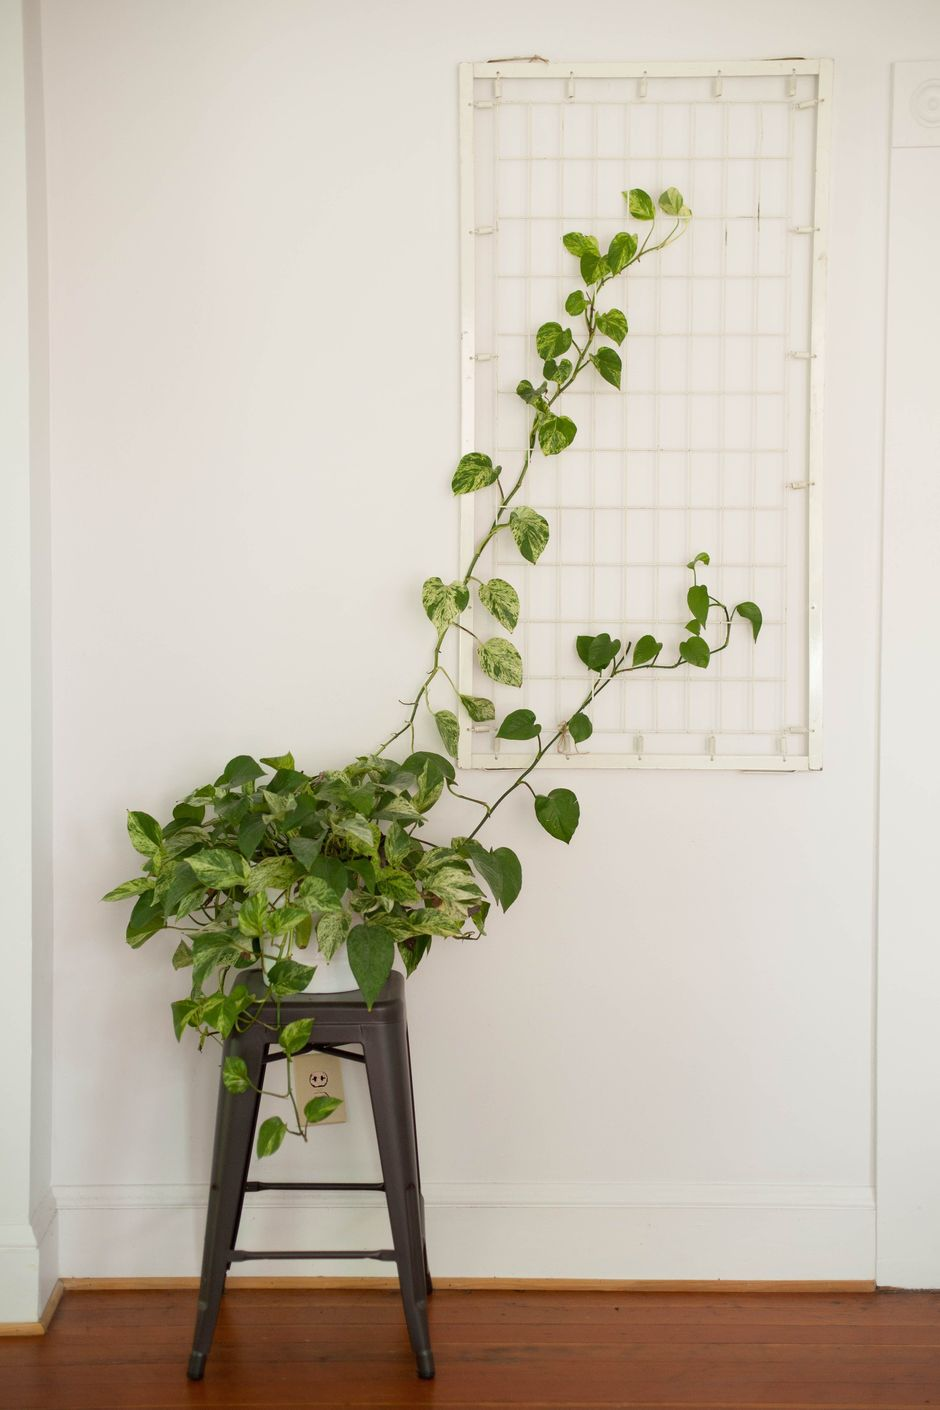 Marvelous Indoor Vines and Climbing Plants Decorations 21